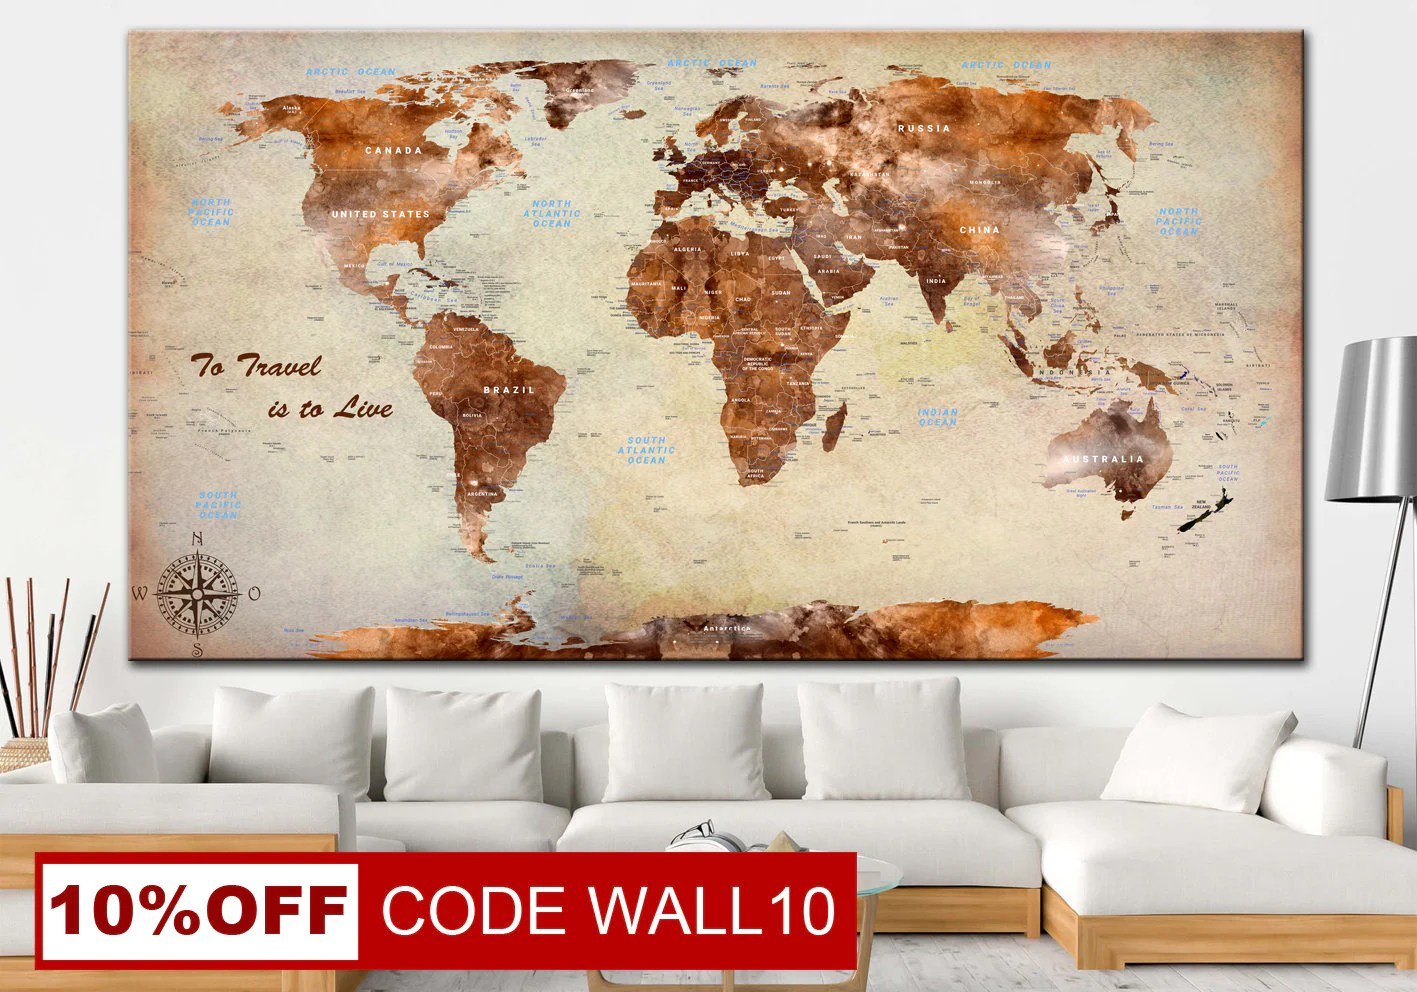 Wall Prints For Living Room Australia Xxl World Map Art Beige Print Brown Art Vintage World Map Framed Beige Print Brown Art World Map Print Set Frameless Wall Art Office Decor